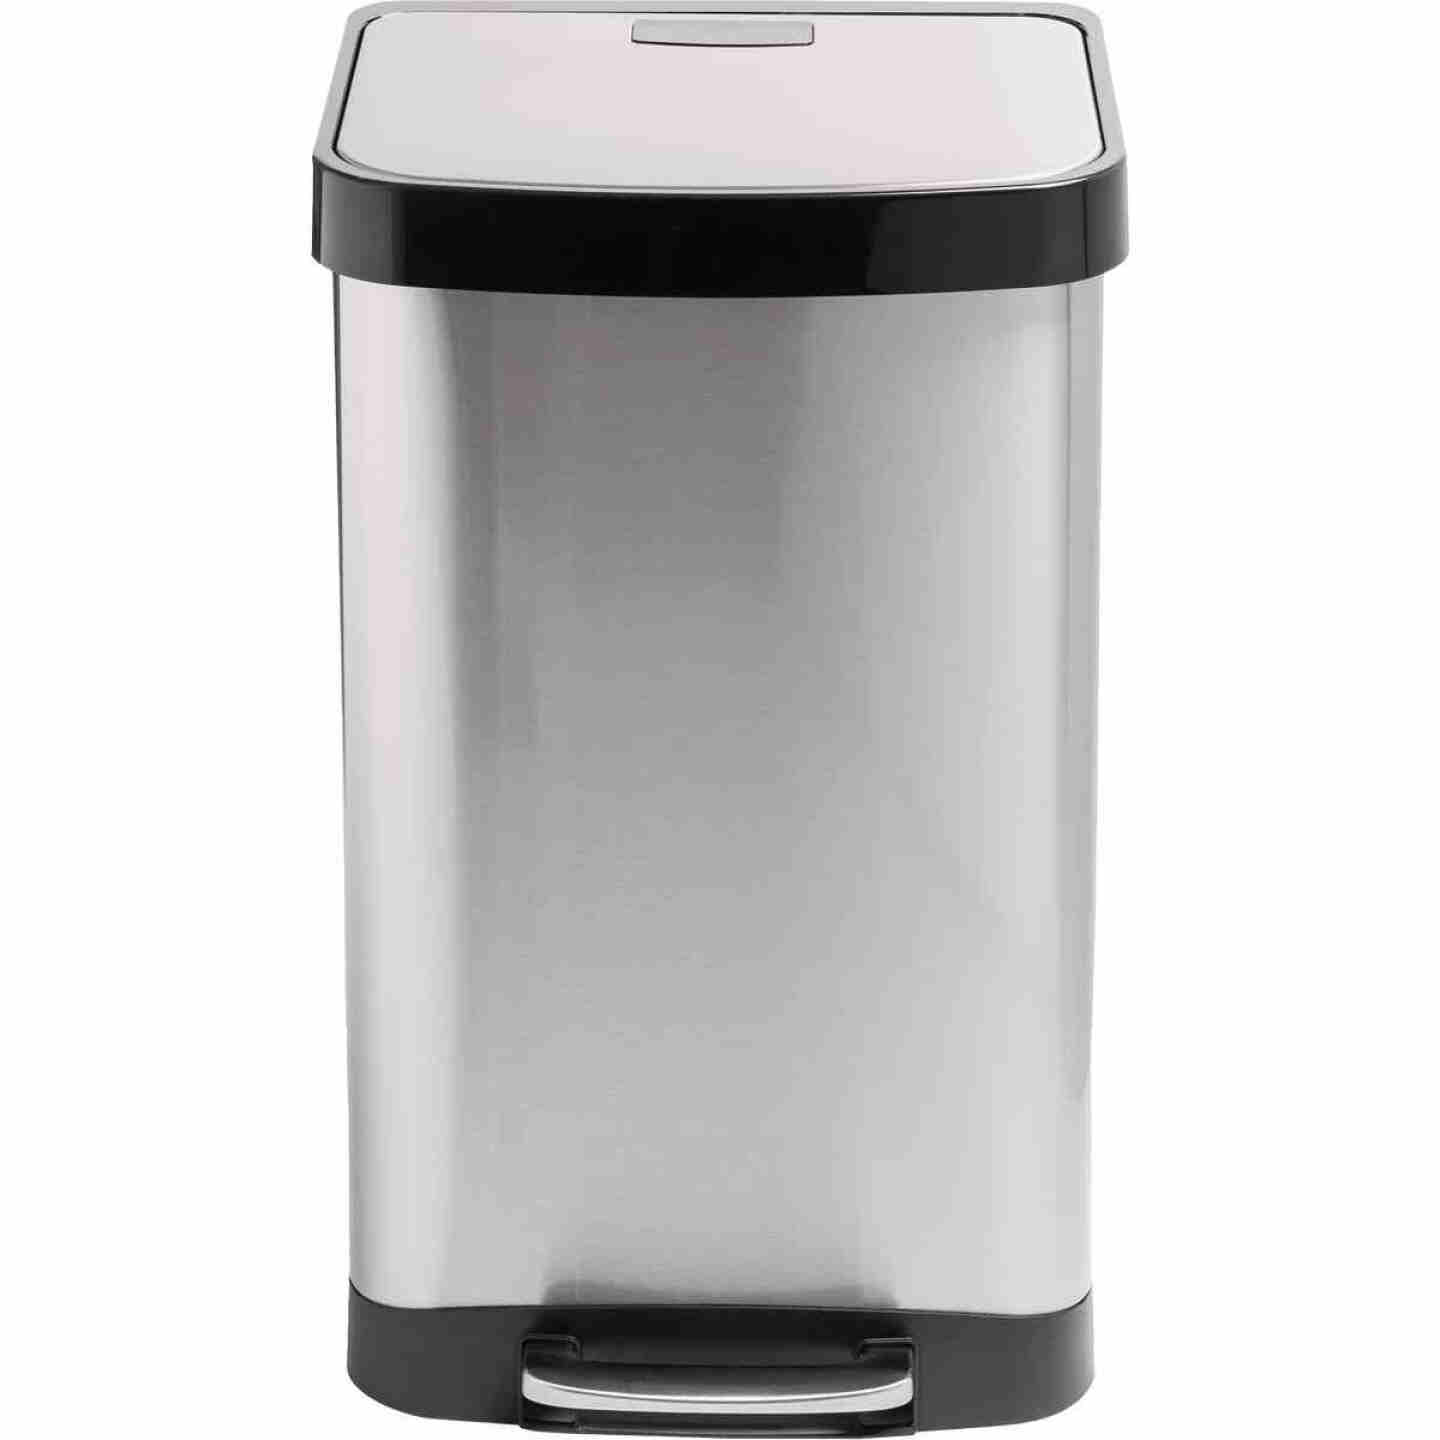 Honey Can Do 50L Stainless Steel Wastebasket Image 1